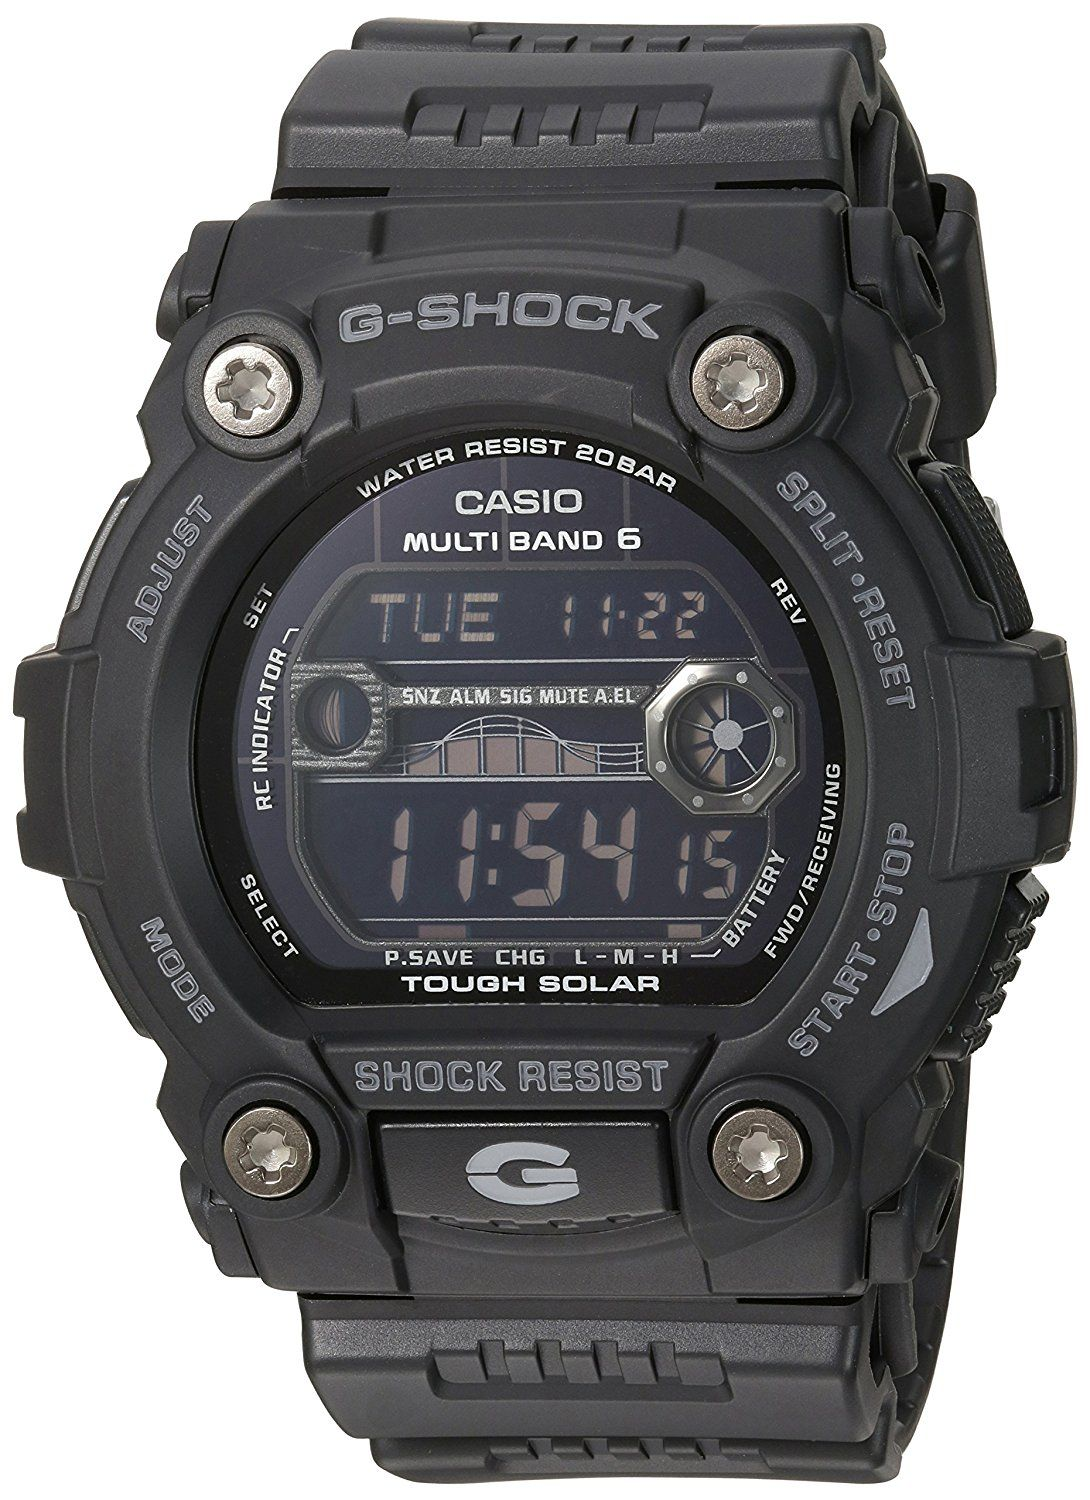 226a67369e1 G-Shock For Police G Shock Black